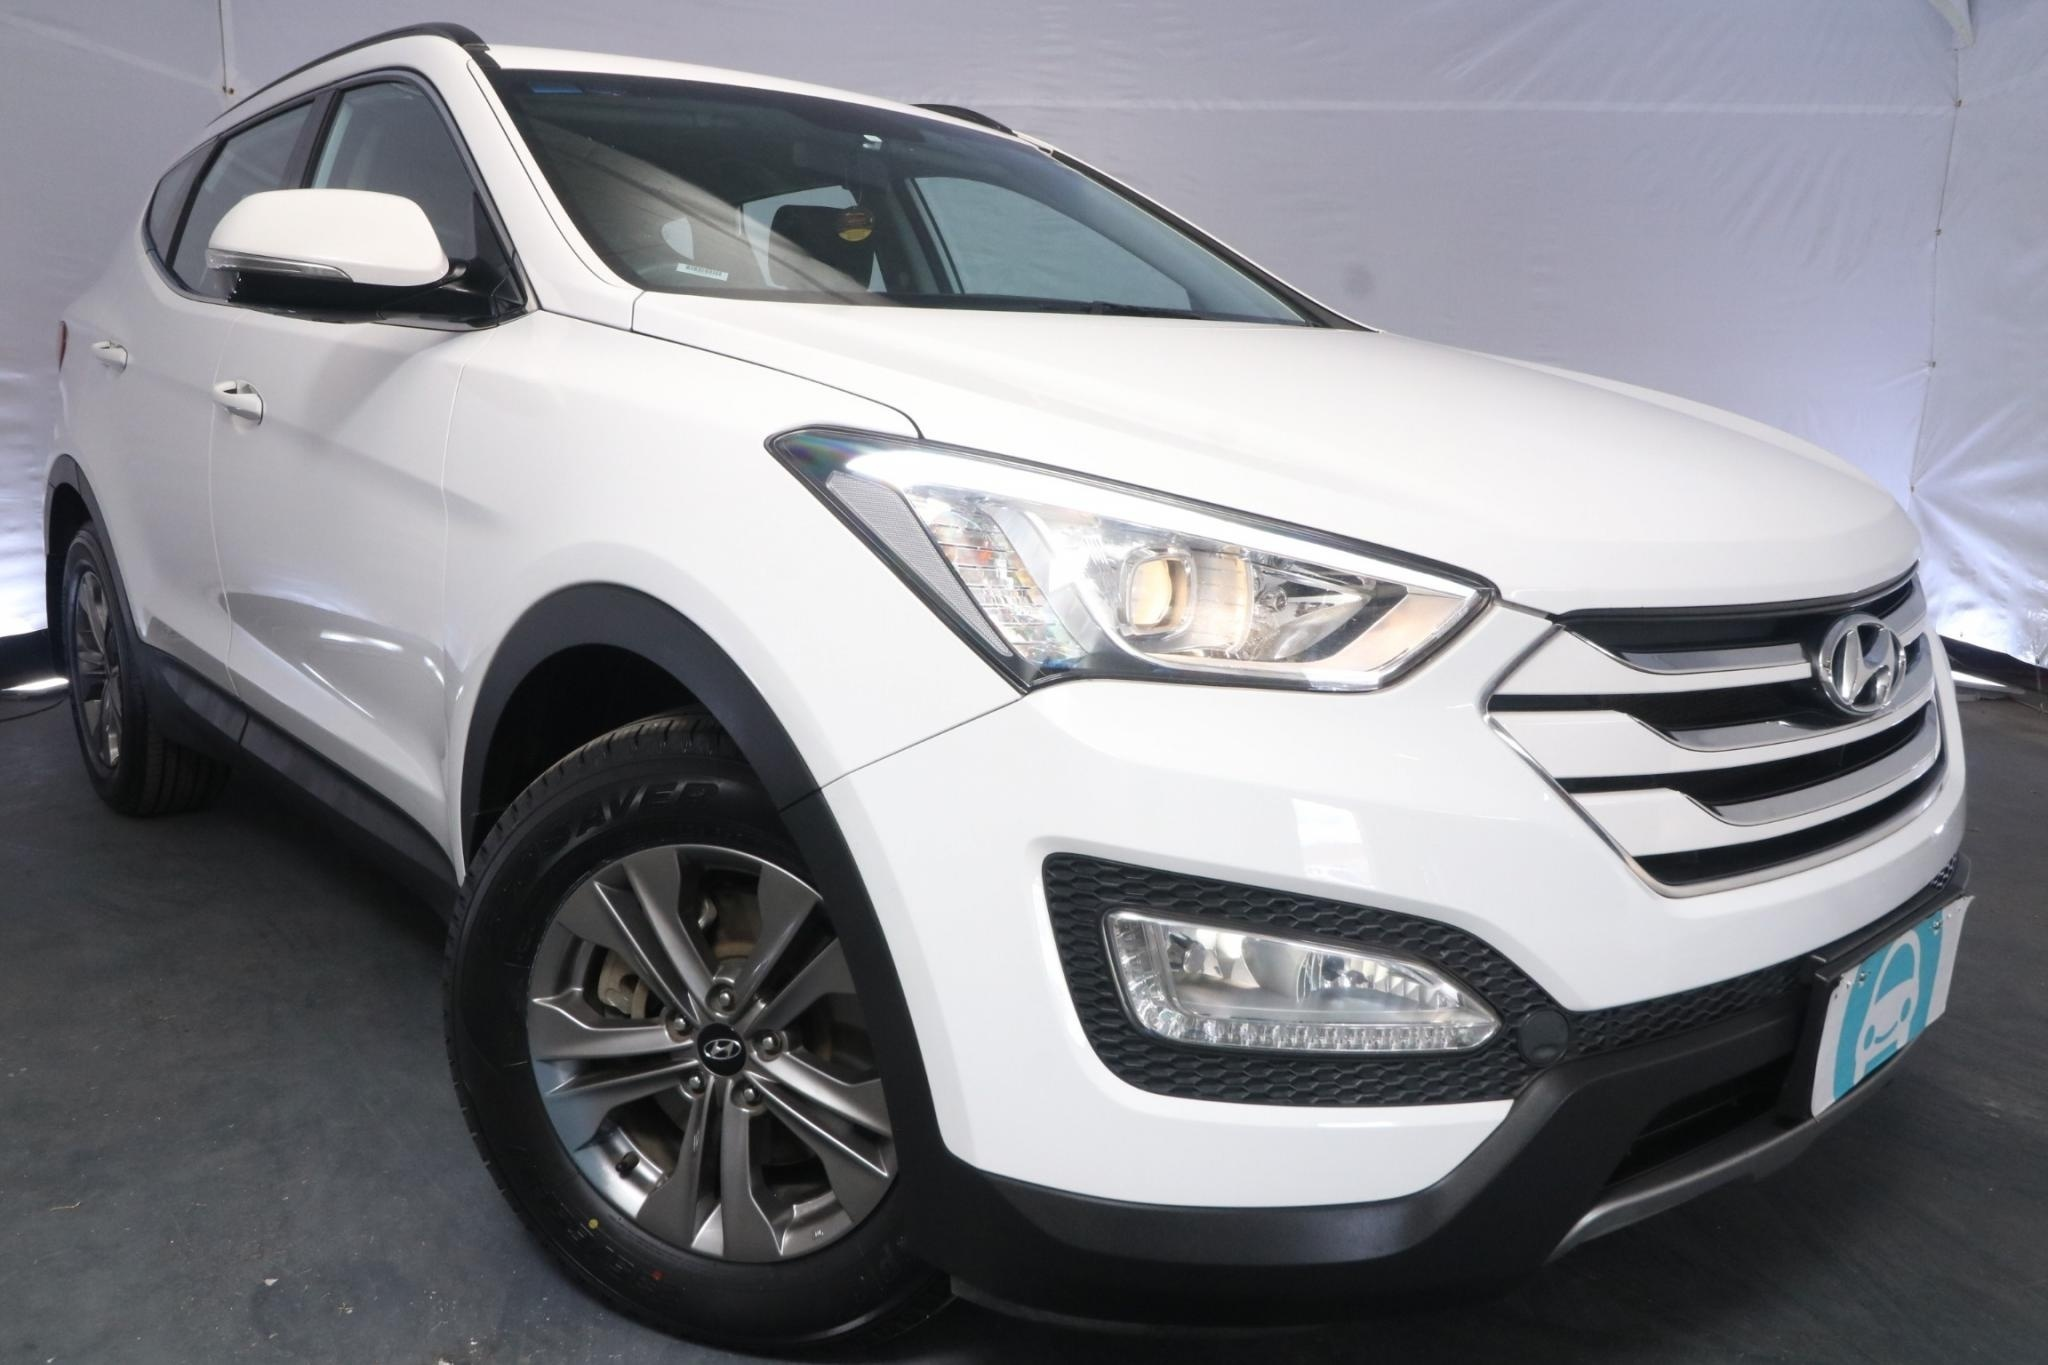 2015 Hyundai Santa Fe ACTIVE DM MY15 / 6 Speed Automatic / Wagon / 2.4L / 4 Cylinder / Petrol / 4x4 / 4 door / Model Year '15 September release RLH15A